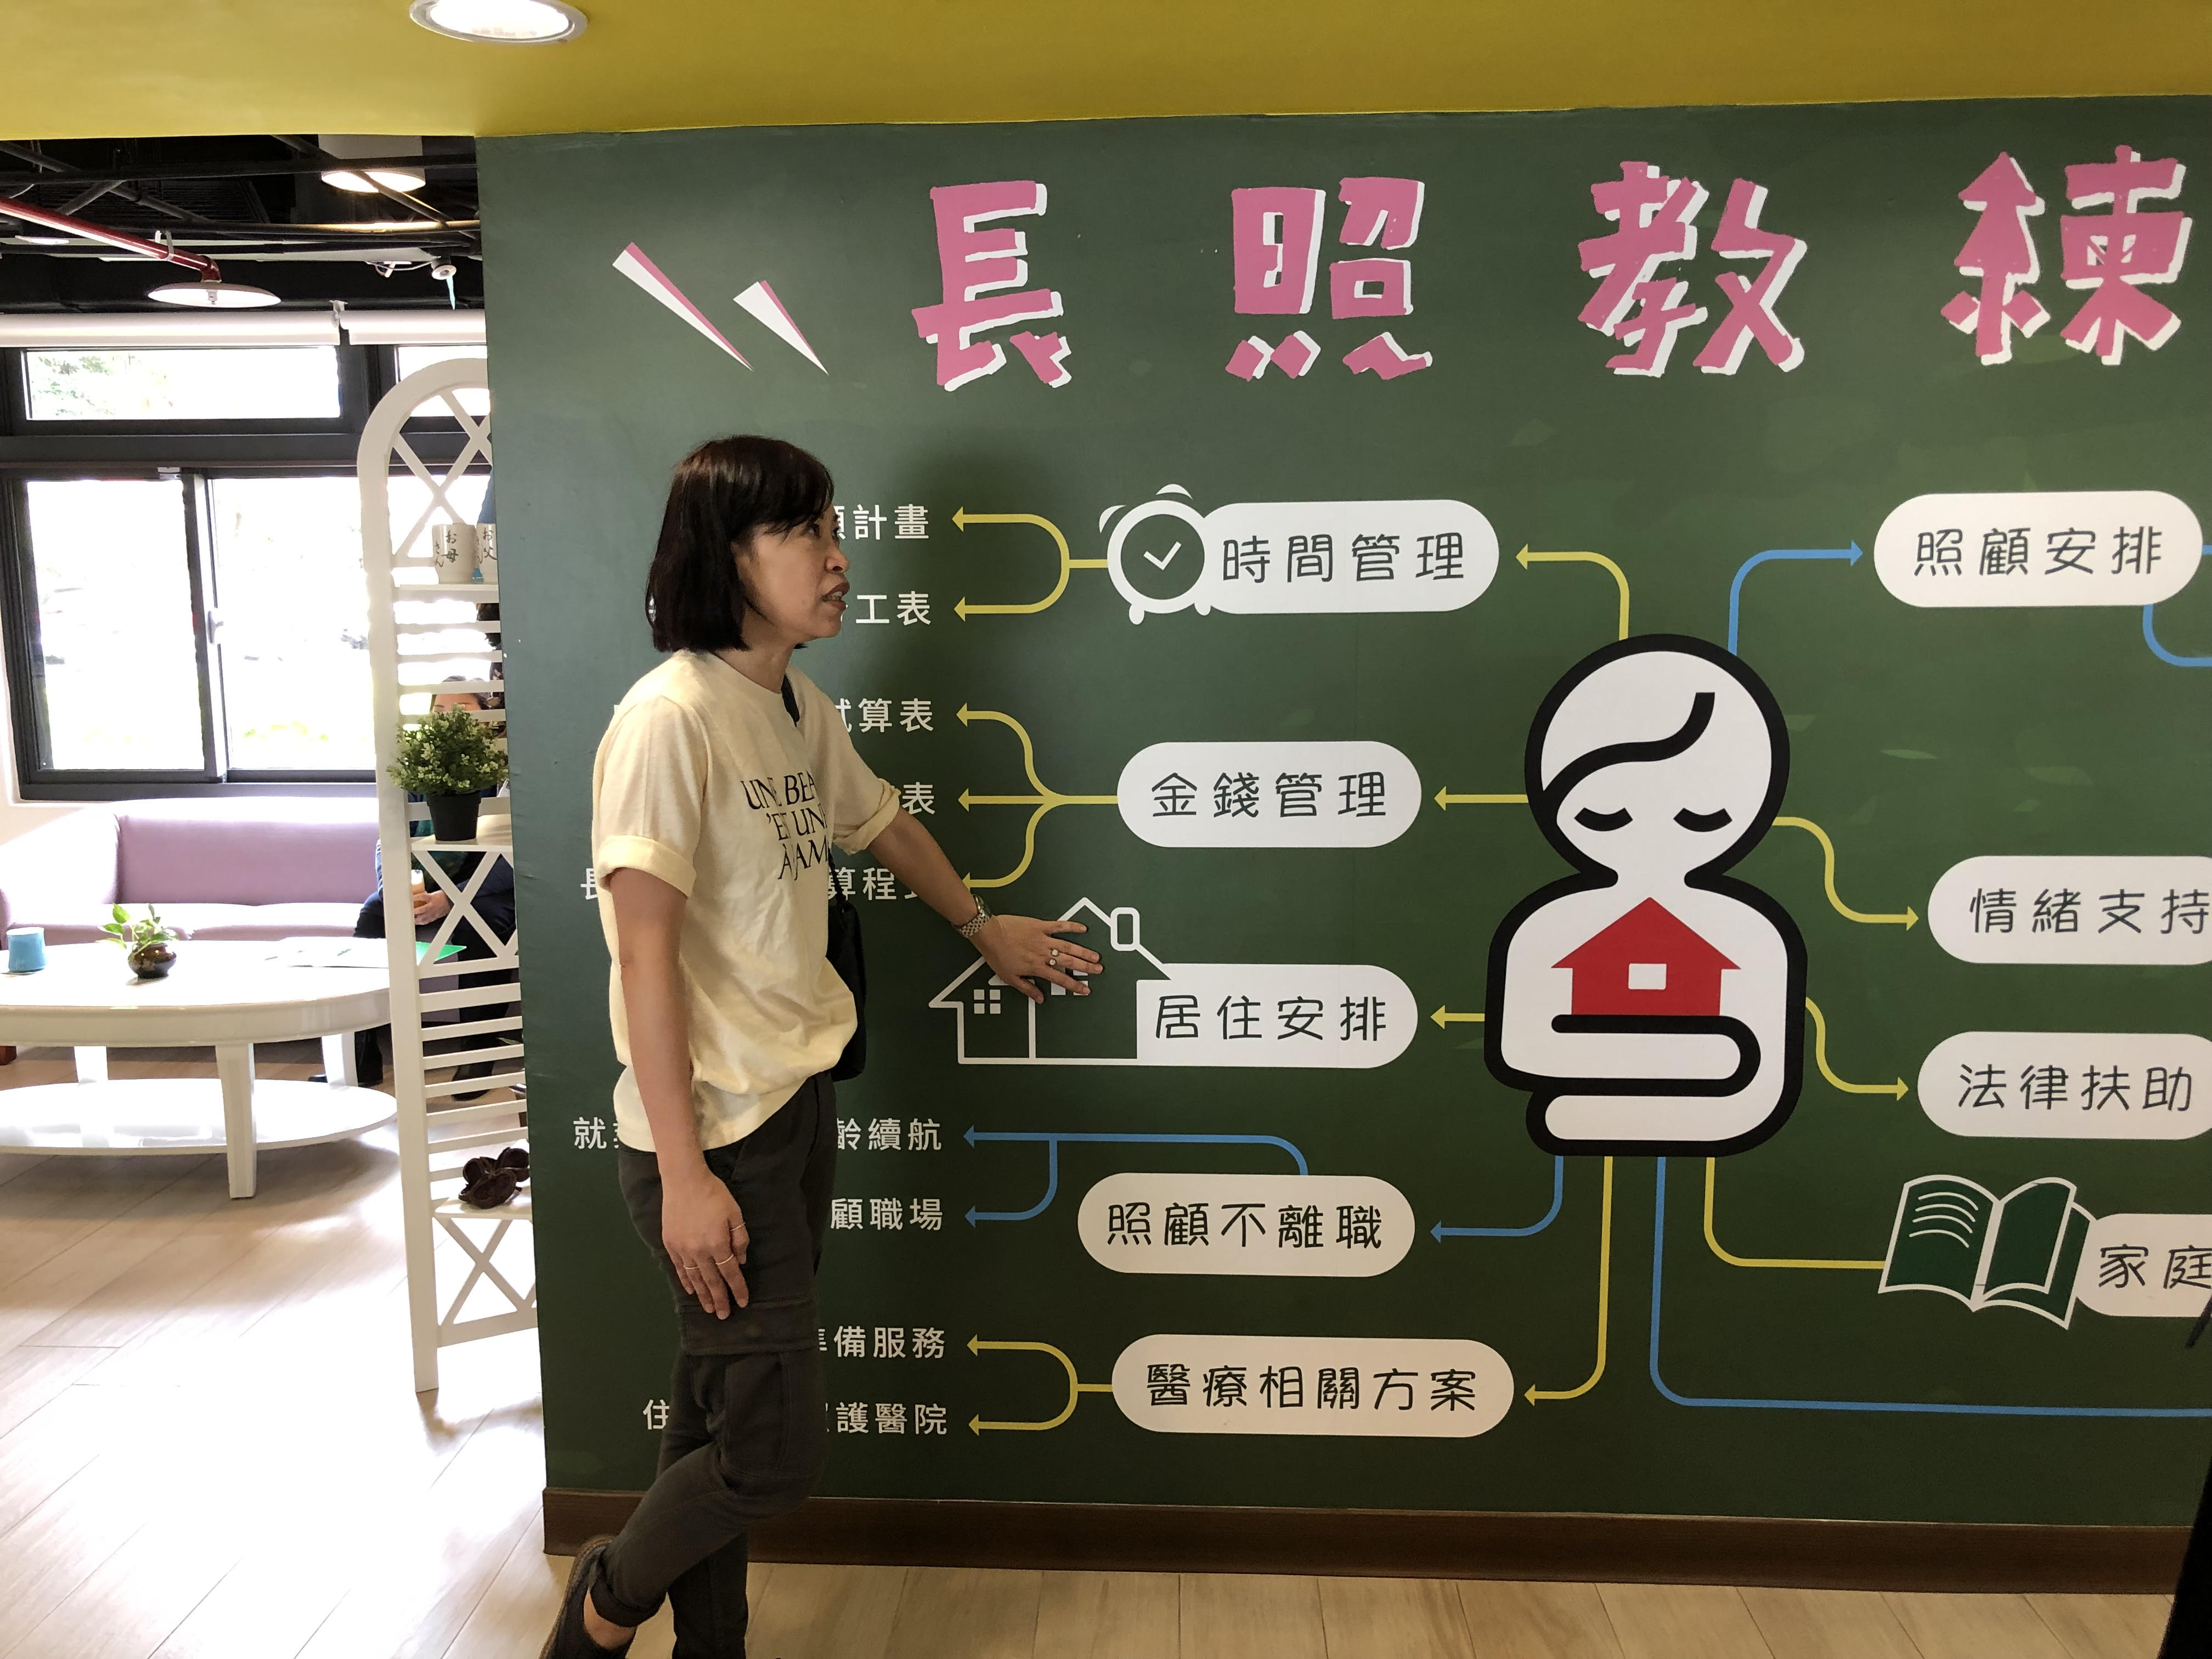 Poster at the New Centre for Care cafe in Taiwan